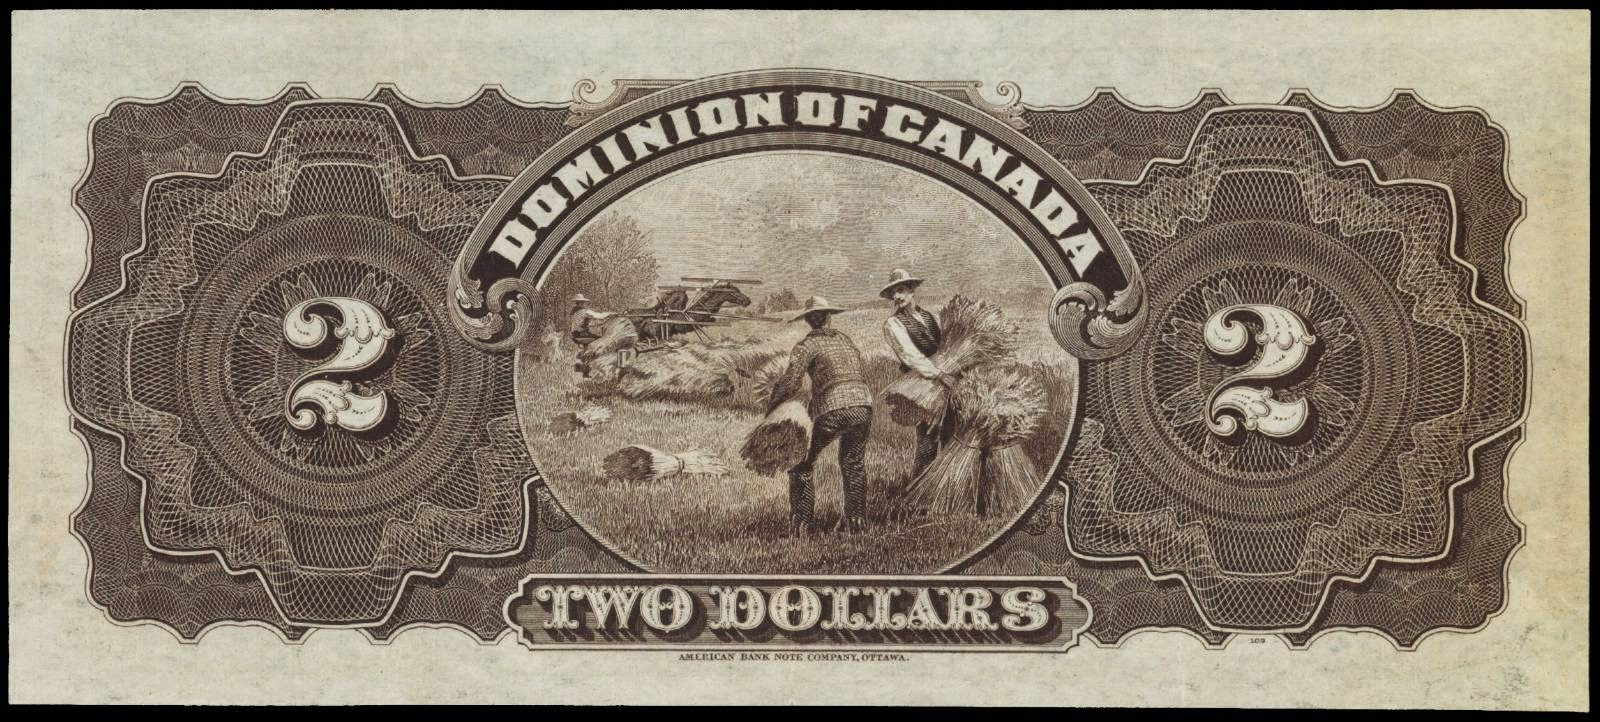 Dominion of Canada banknotes 2 Dollars 1897